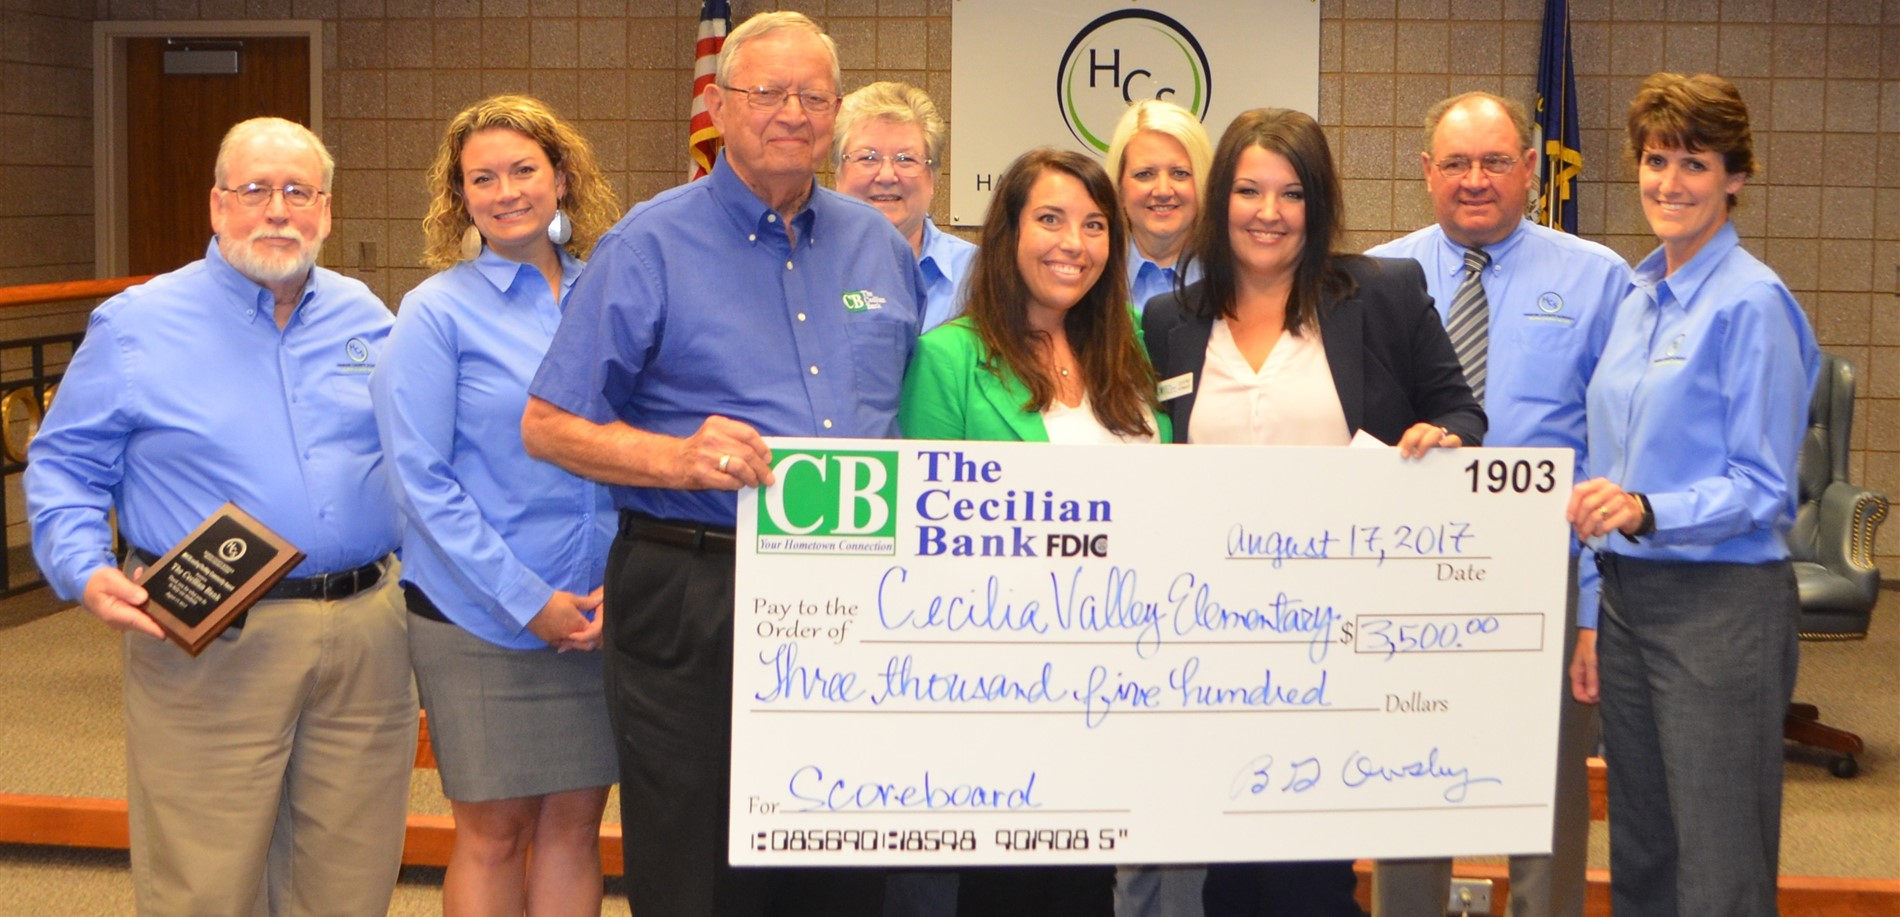 Thank you Cecilian Bank for your continued support of our students and staff.